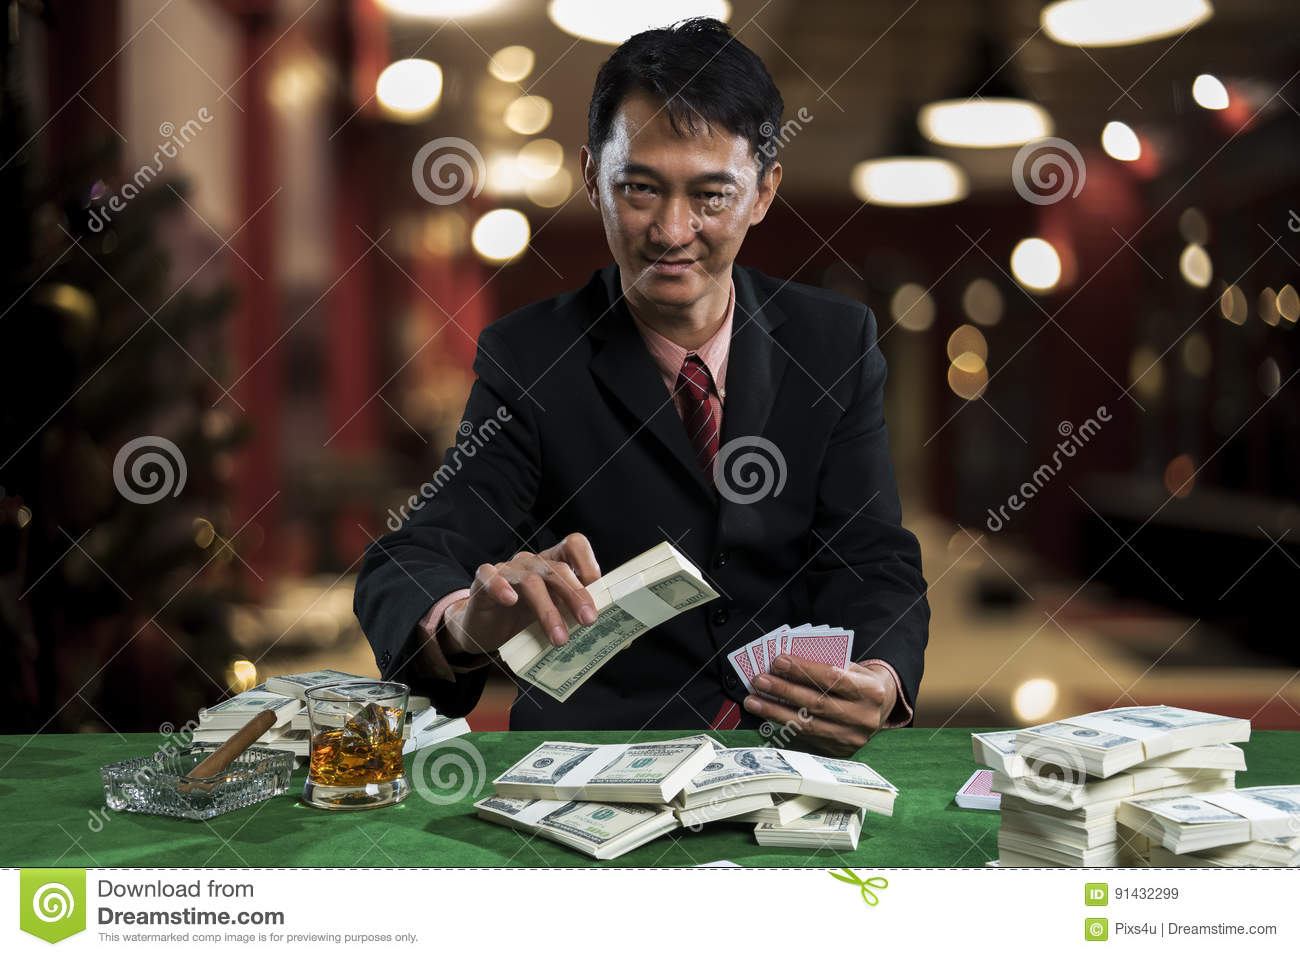 The young gambler is putting bets into the piles of banknote